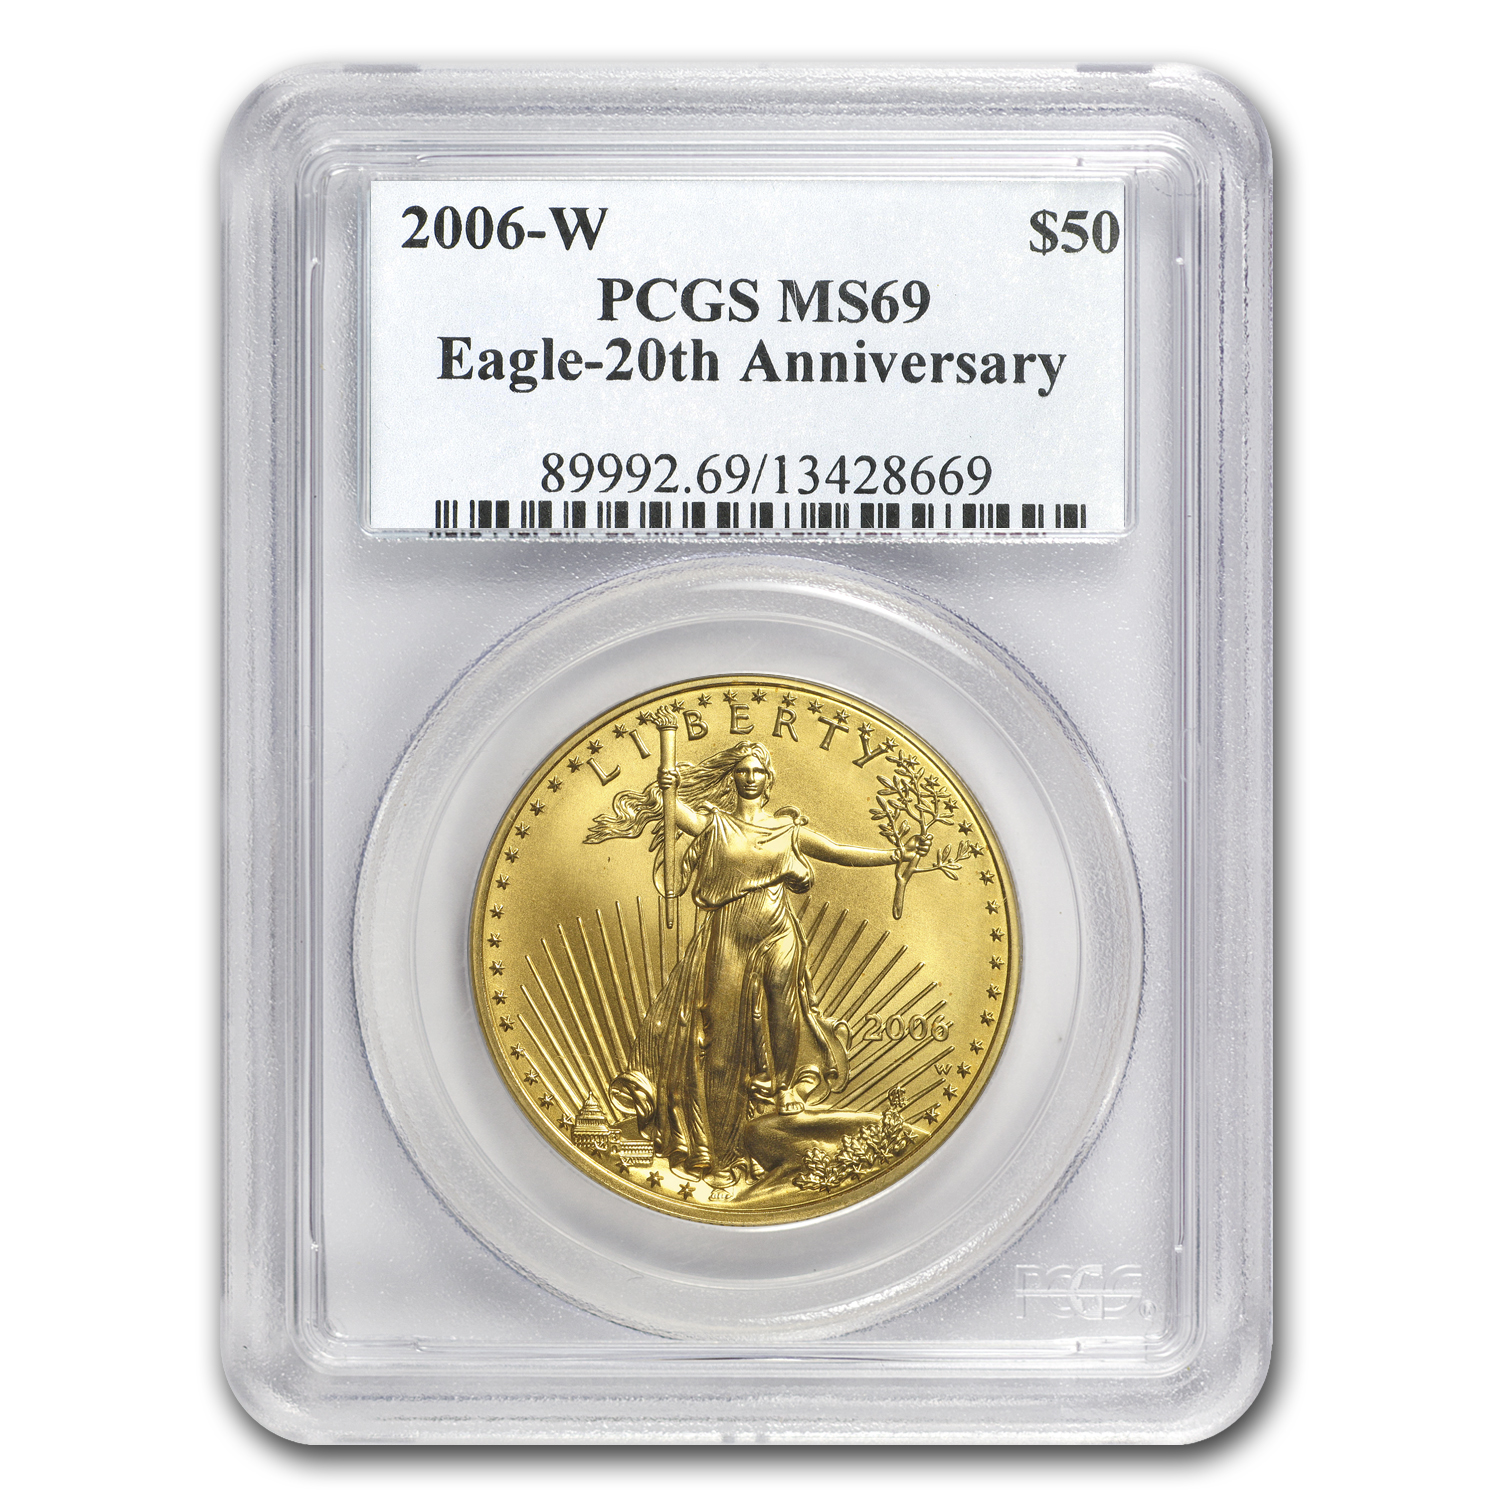 2006-W 1 oz Burnished Gold Eagle MS-69 PCGS (20th Anniversary)